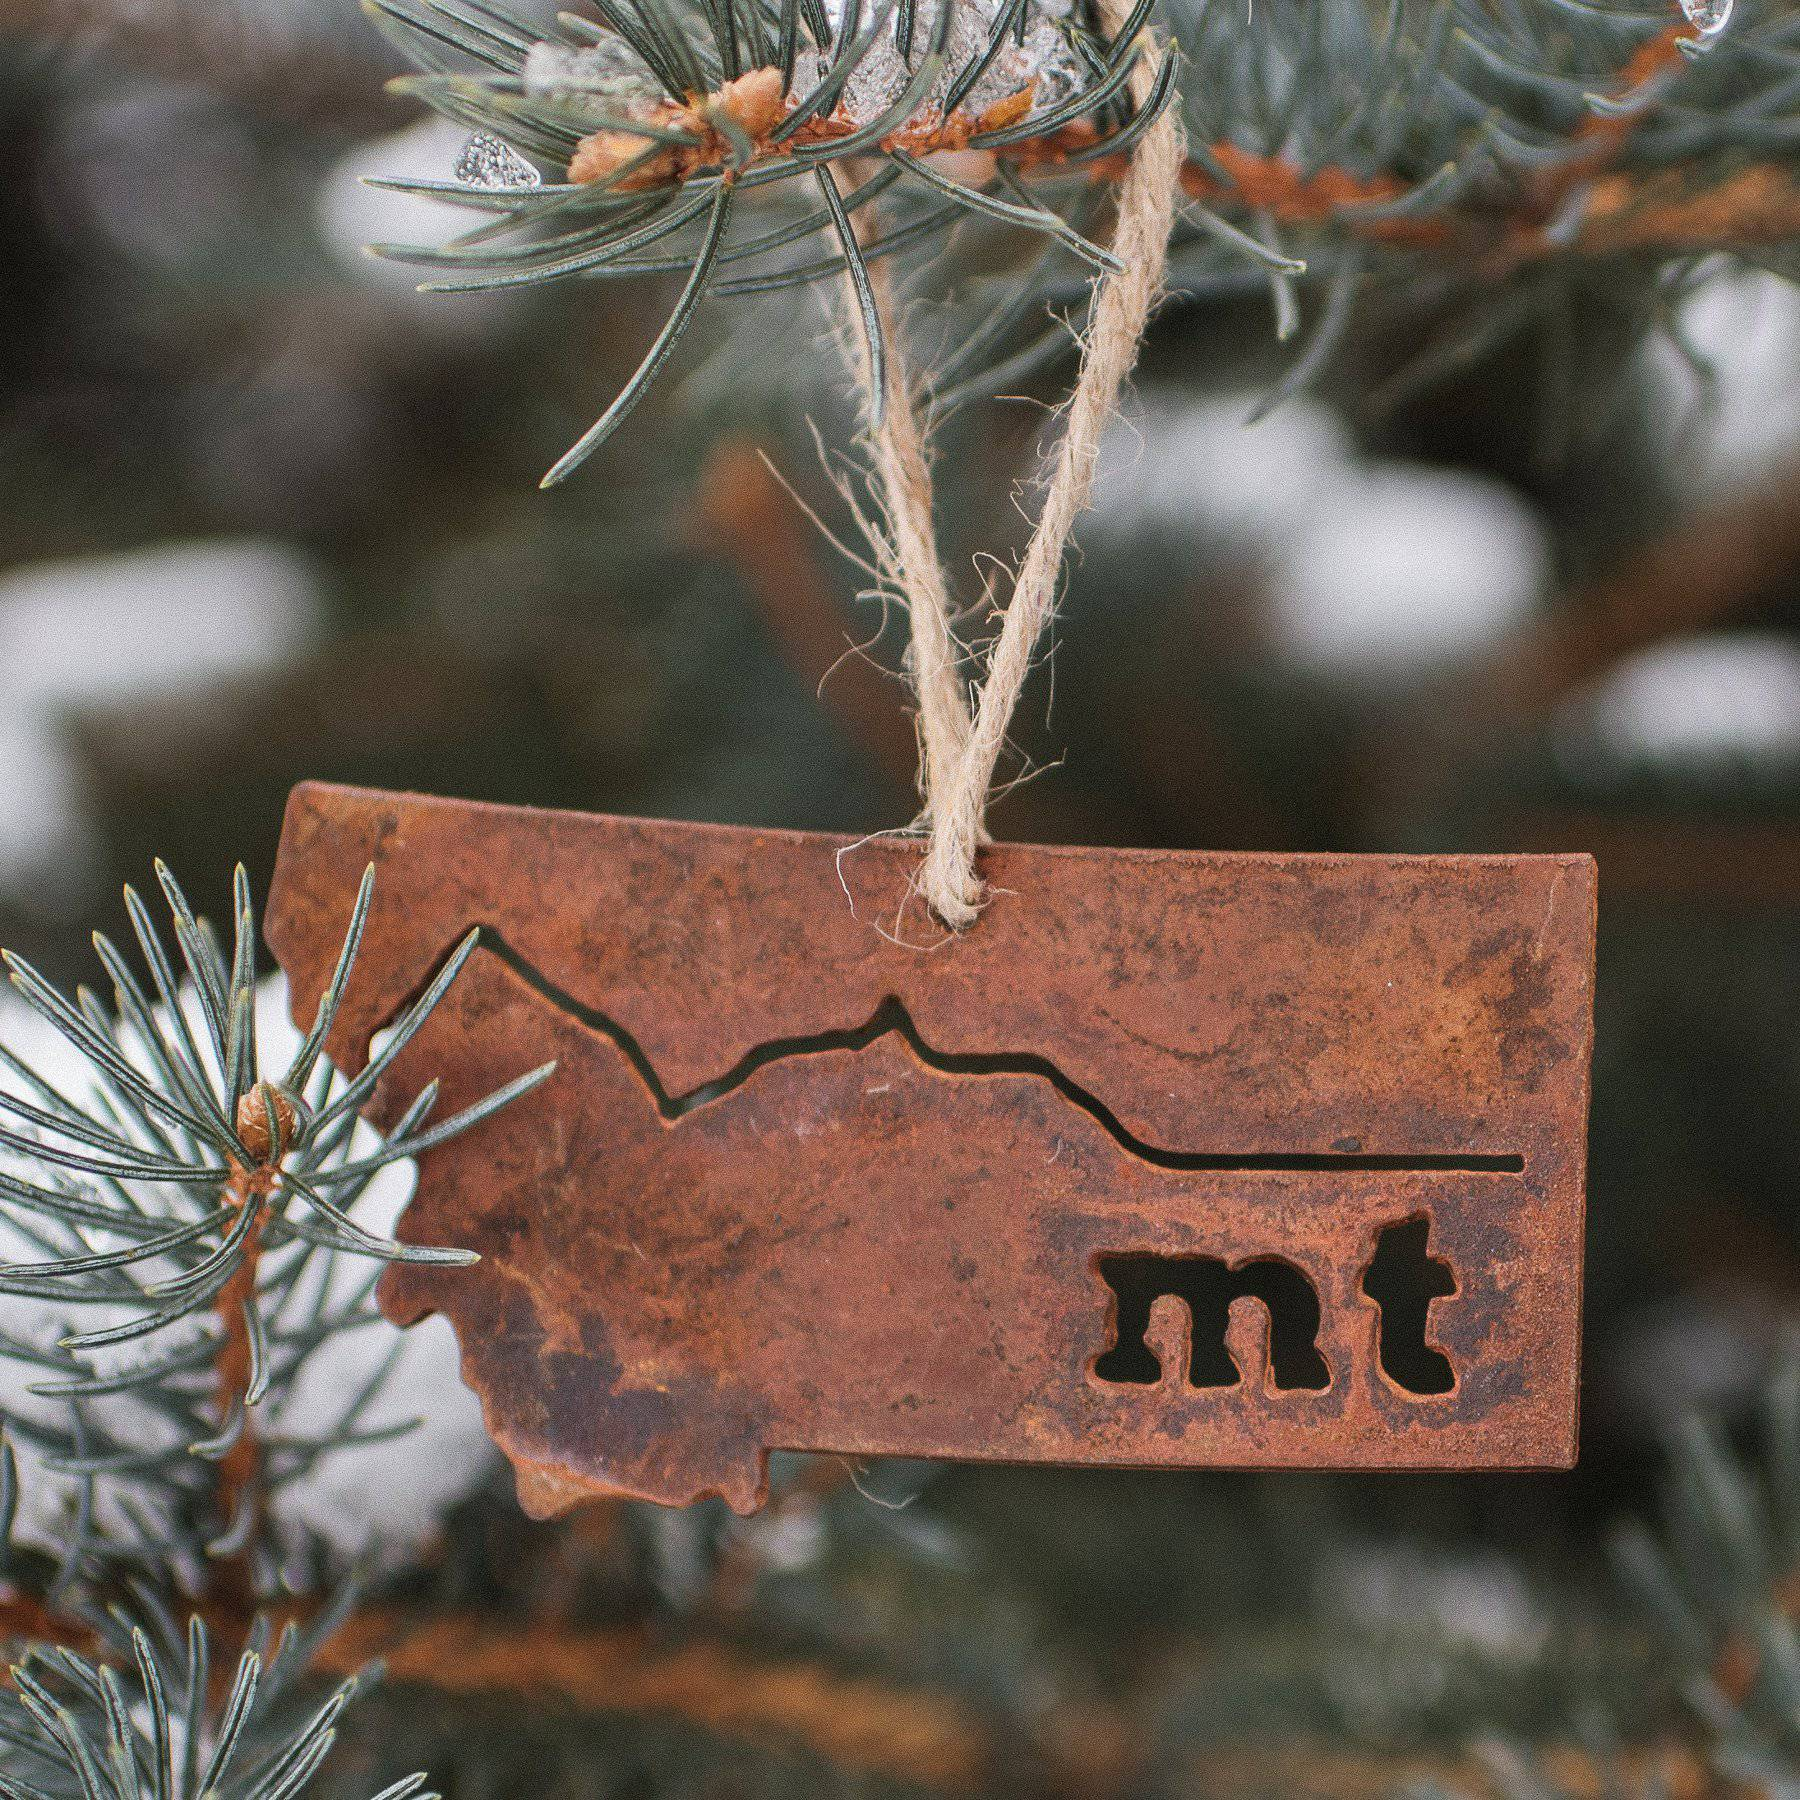 Metal Montana Mountains Ornament - MONTANA SHIRT CO.